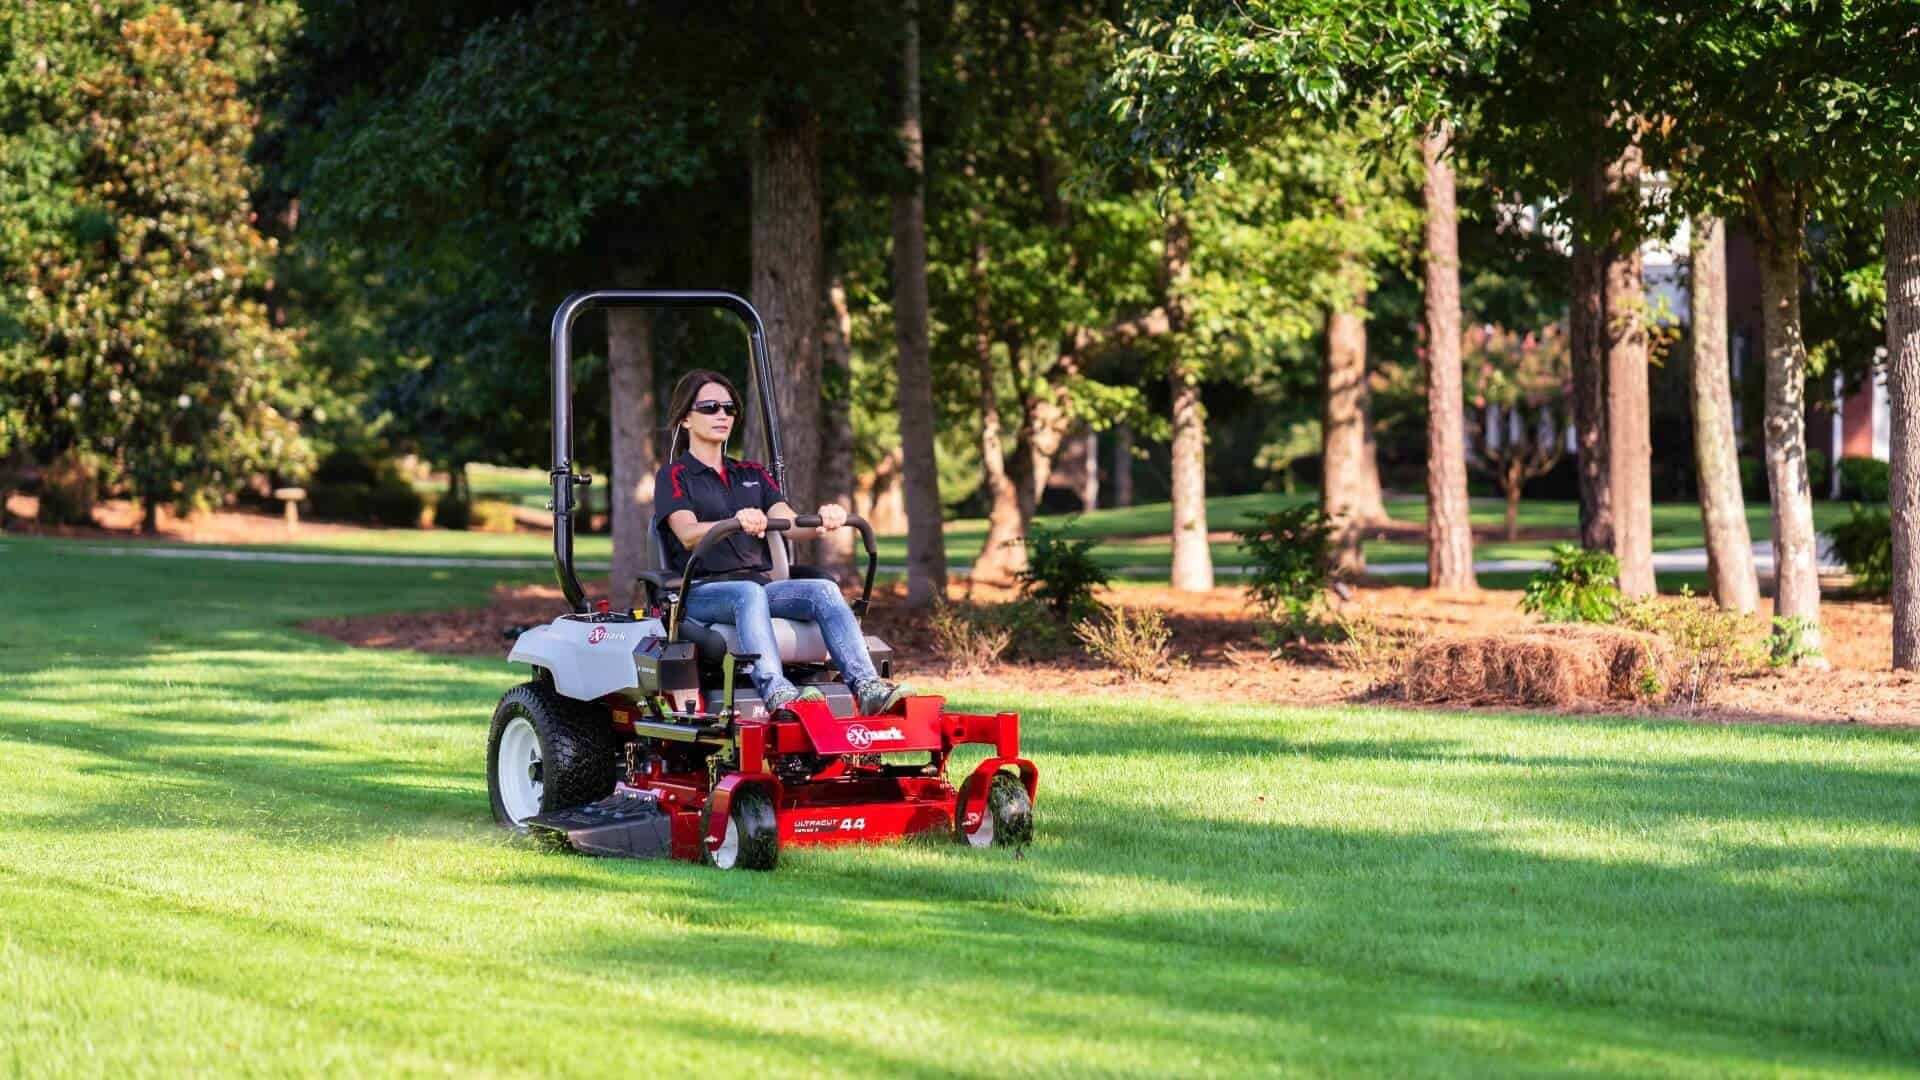 Good design means landscaping makes mowing easier